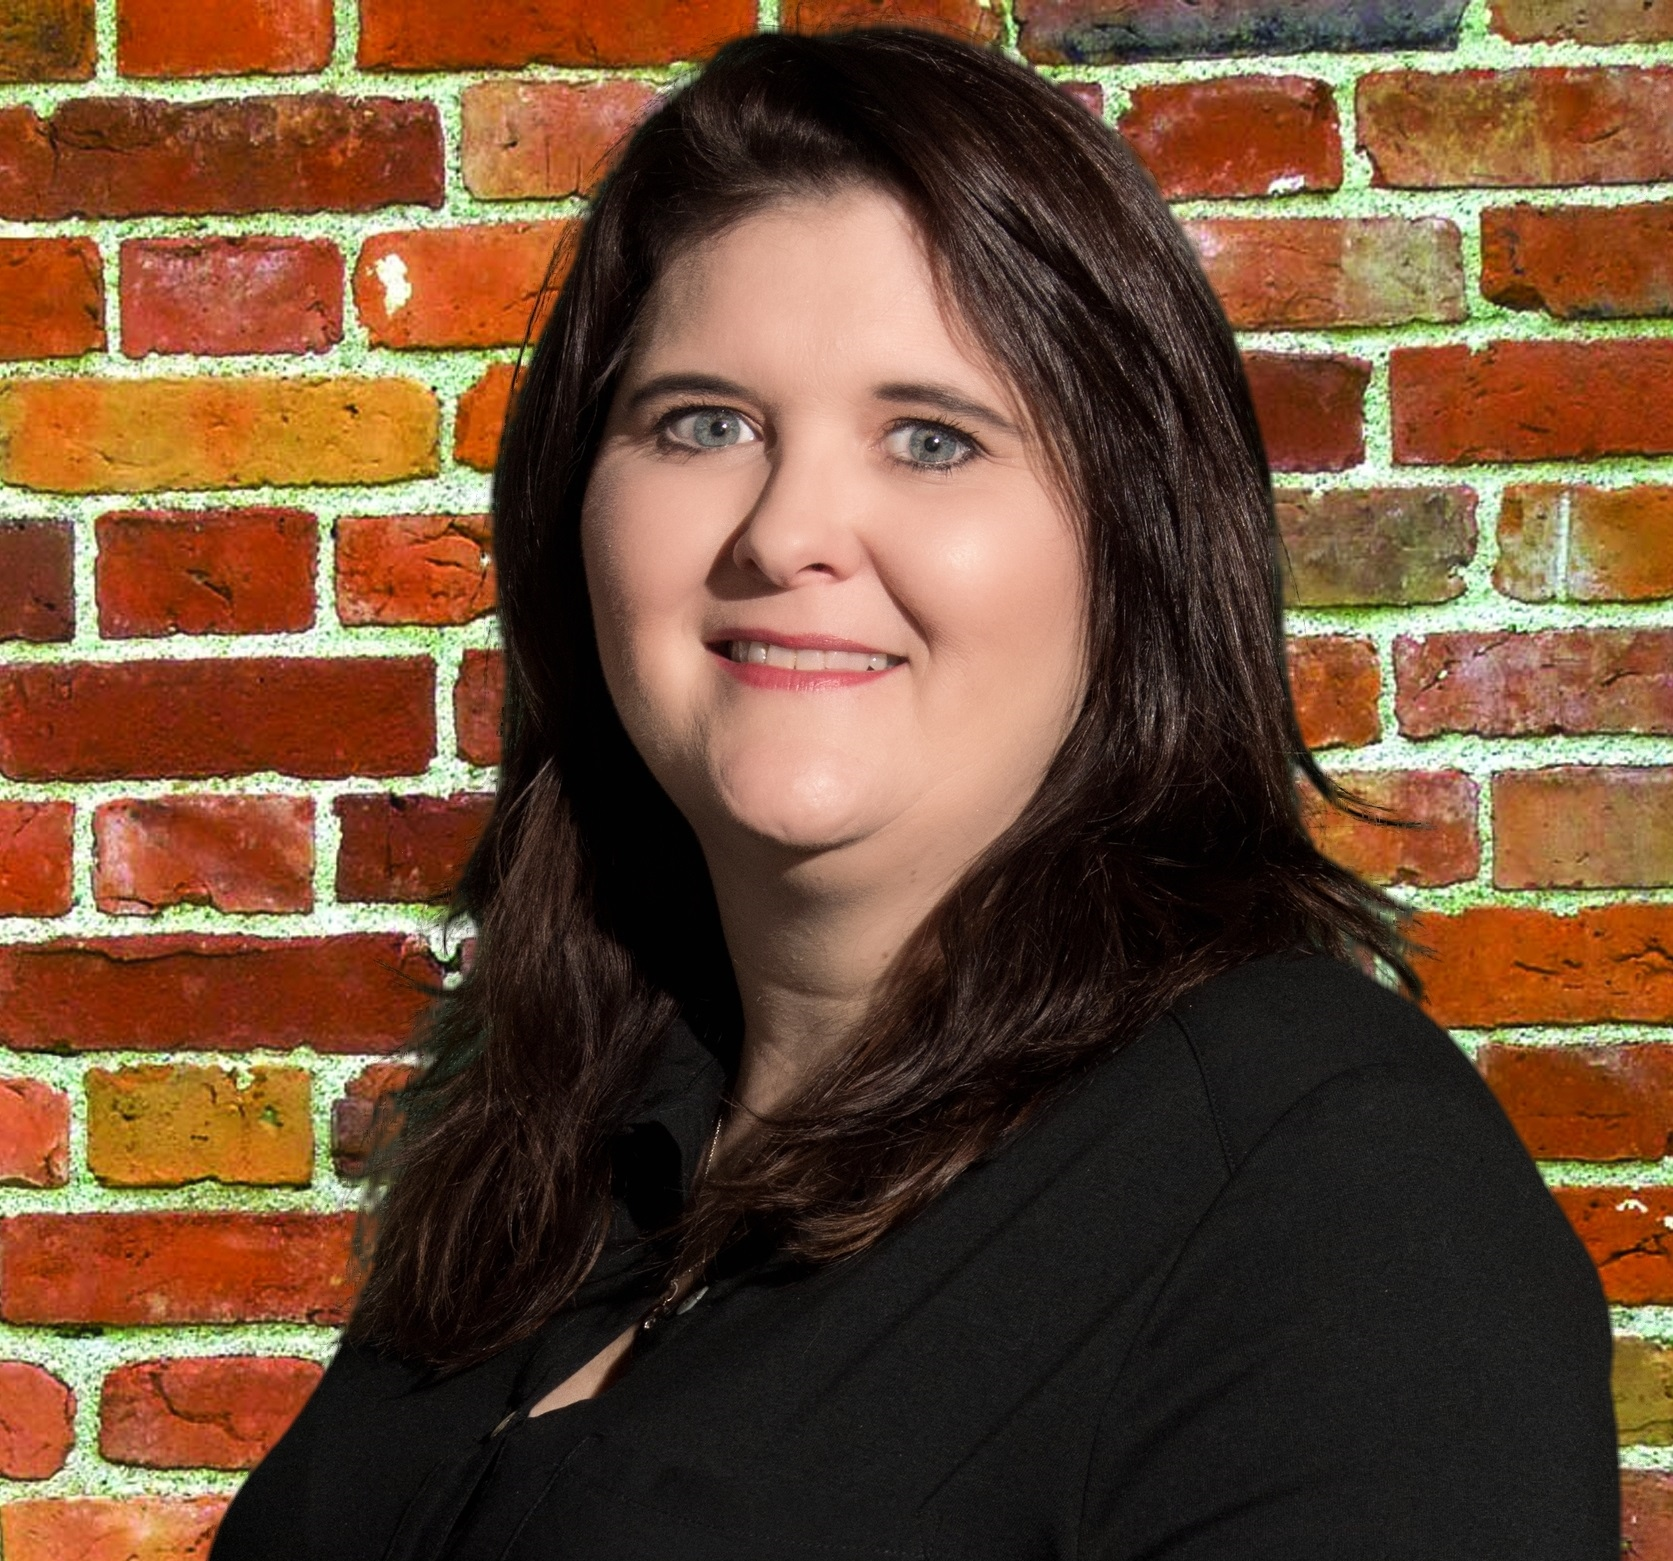 Beth Matthews - Accounts Receivable and Payable ManagerBeth has more than ten years of experience in accounts receivable and payable. She manages the entire service department's billing process and tracks all paperwork pertaining to each service call received at RCS. She also coordinates the service calls between the Service Manager and Service Technicians. In addition, Beth manages the data entry of the accounts payable invoices.She is a graduate of the University of South Florida with a Bachelor of Arts degree in Mass Communication.